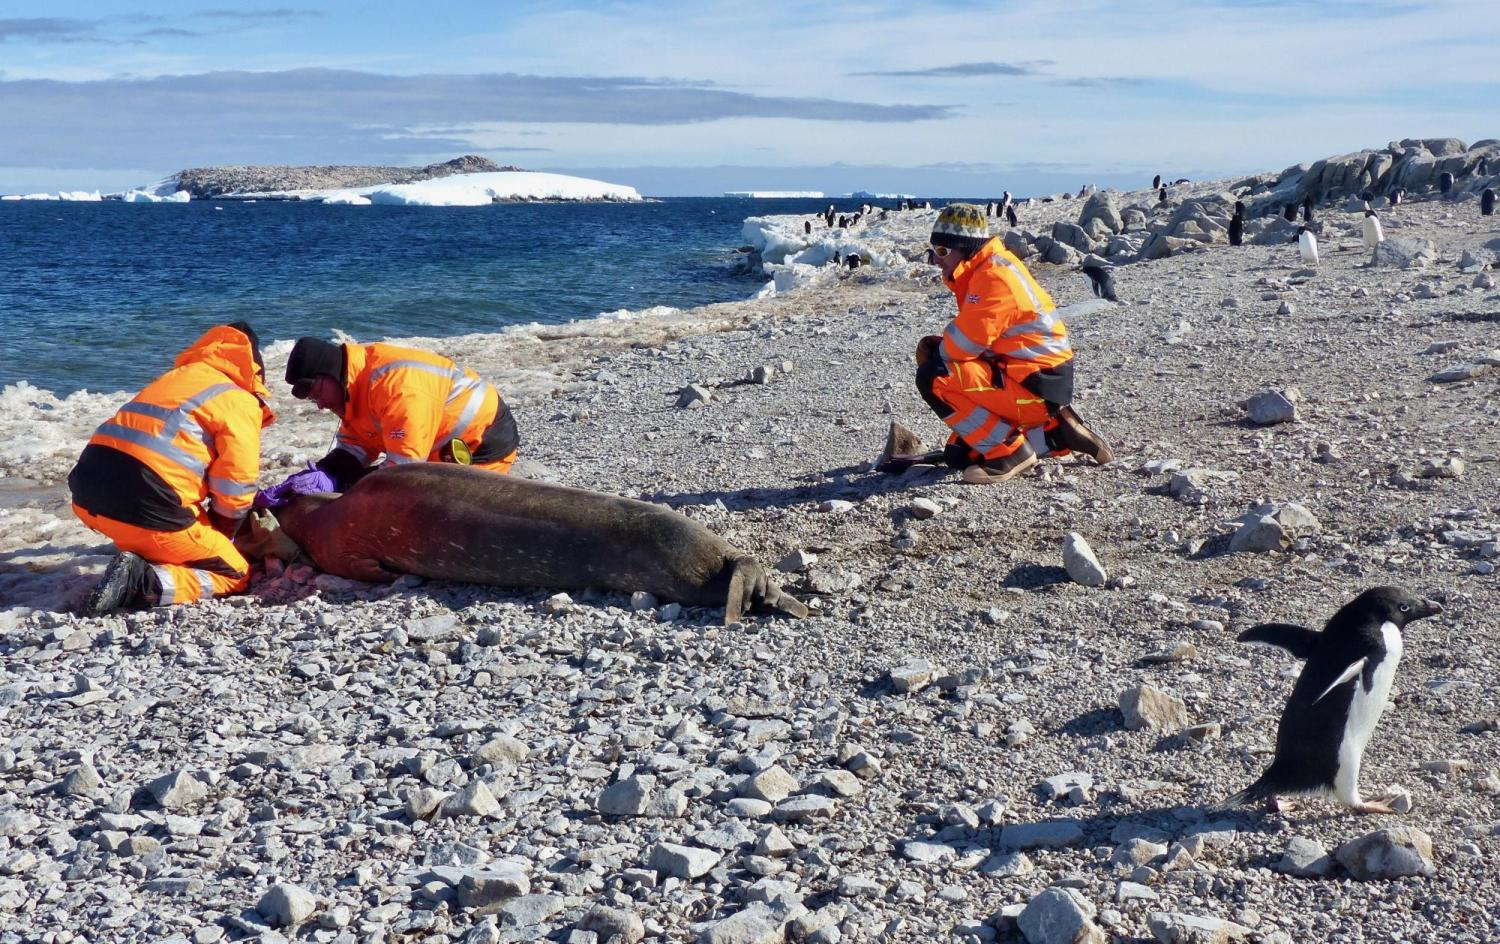 Researchers tagging seal on rocky Antarctic beach